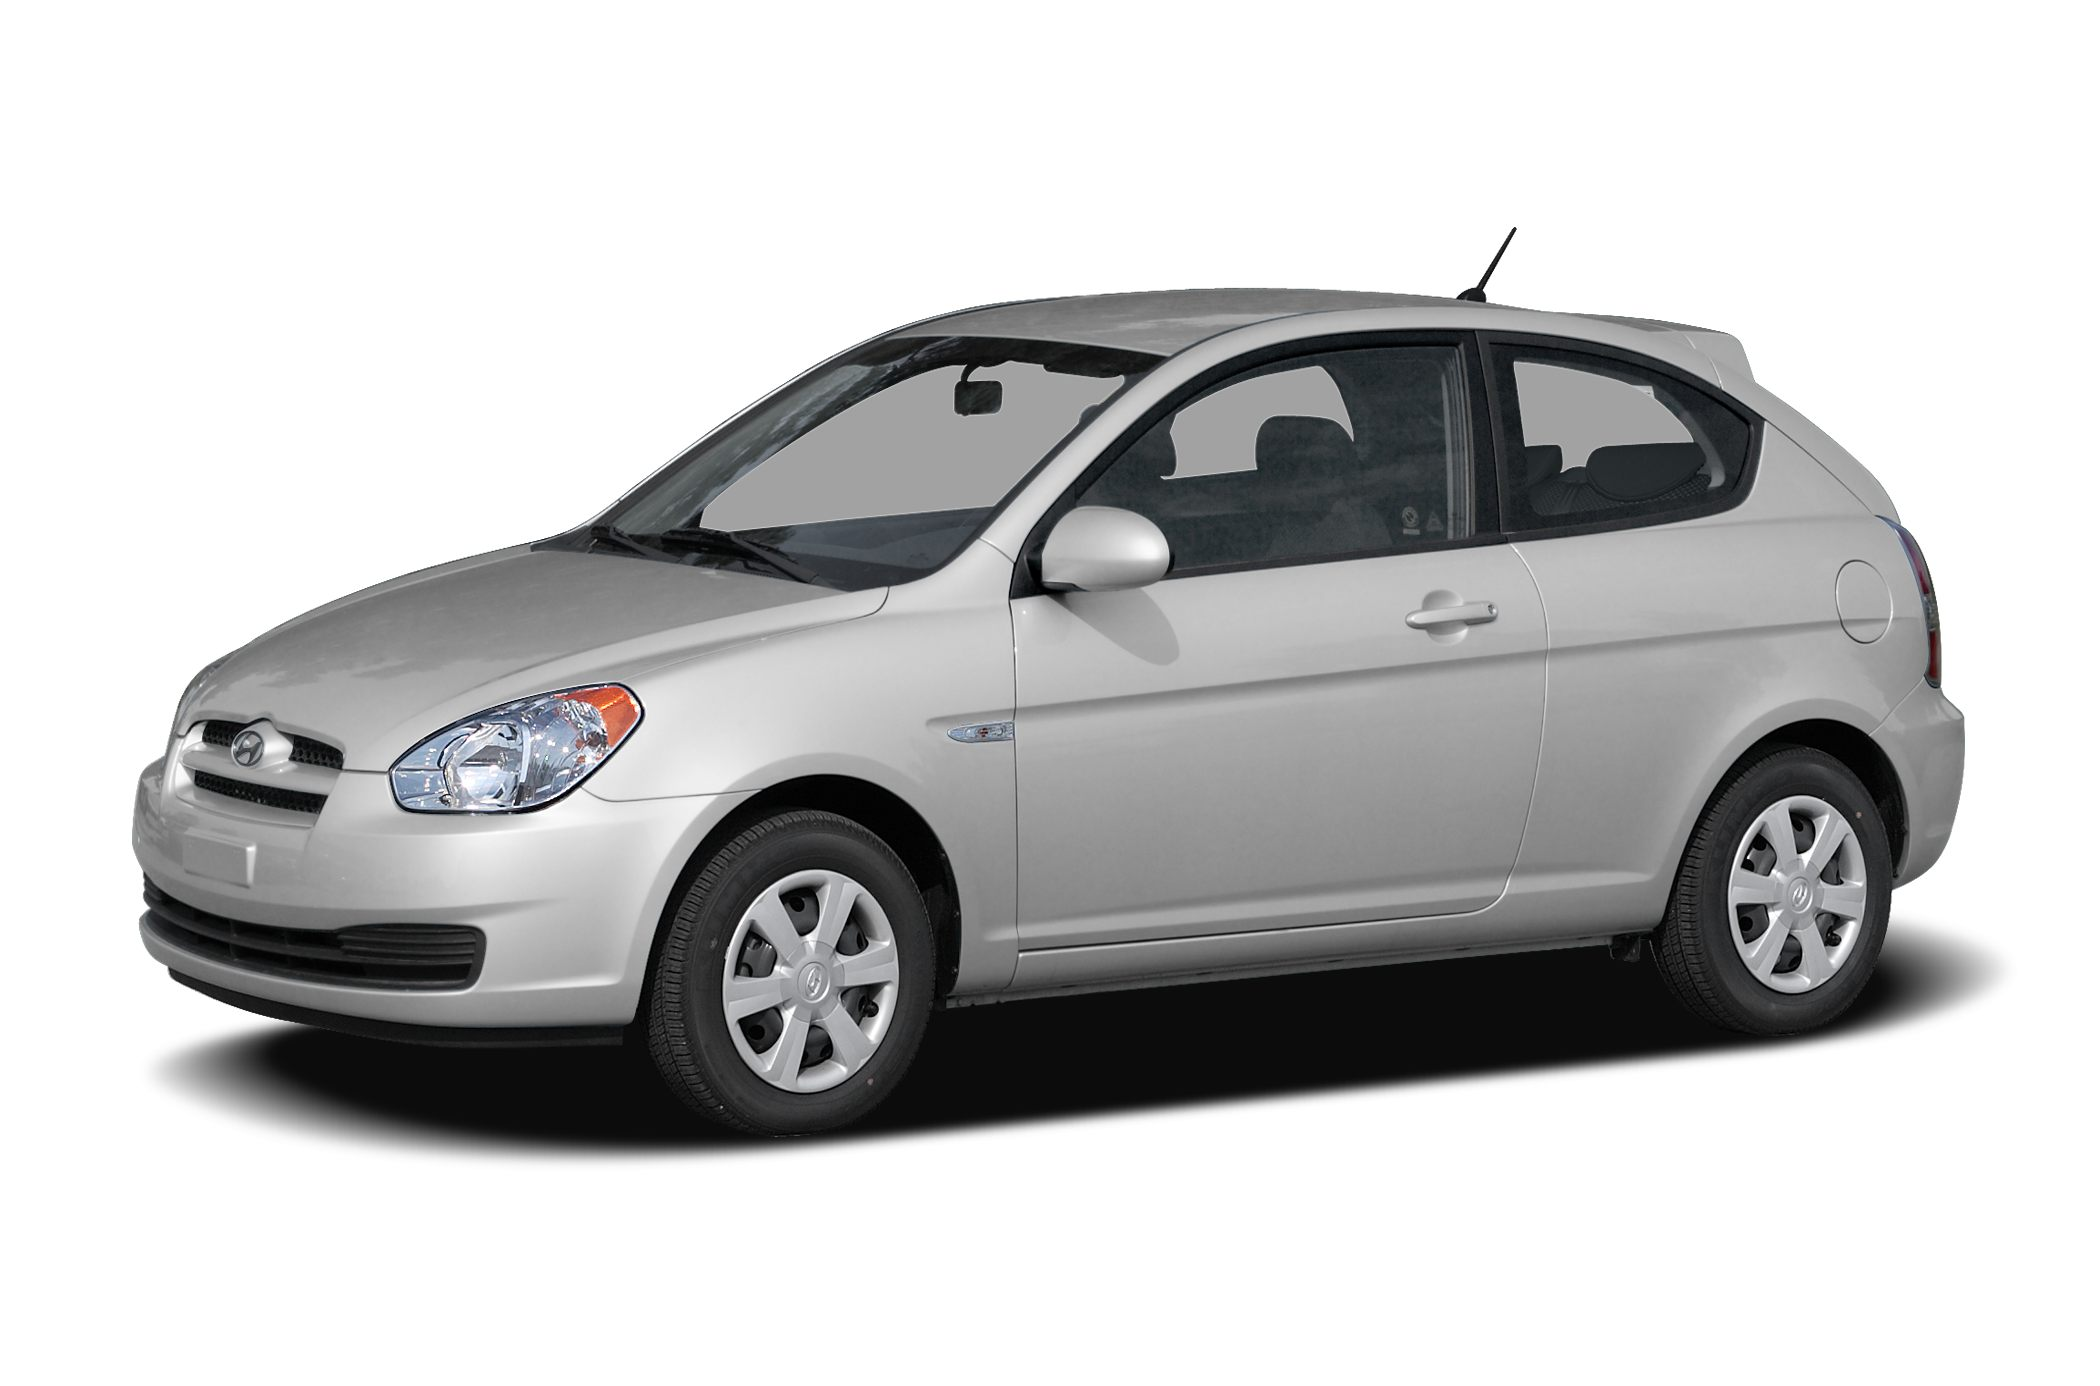 2007 Hyundai Accent GS Hatchback for sale in Cincinnati for $4,495 with 105,734 miles.